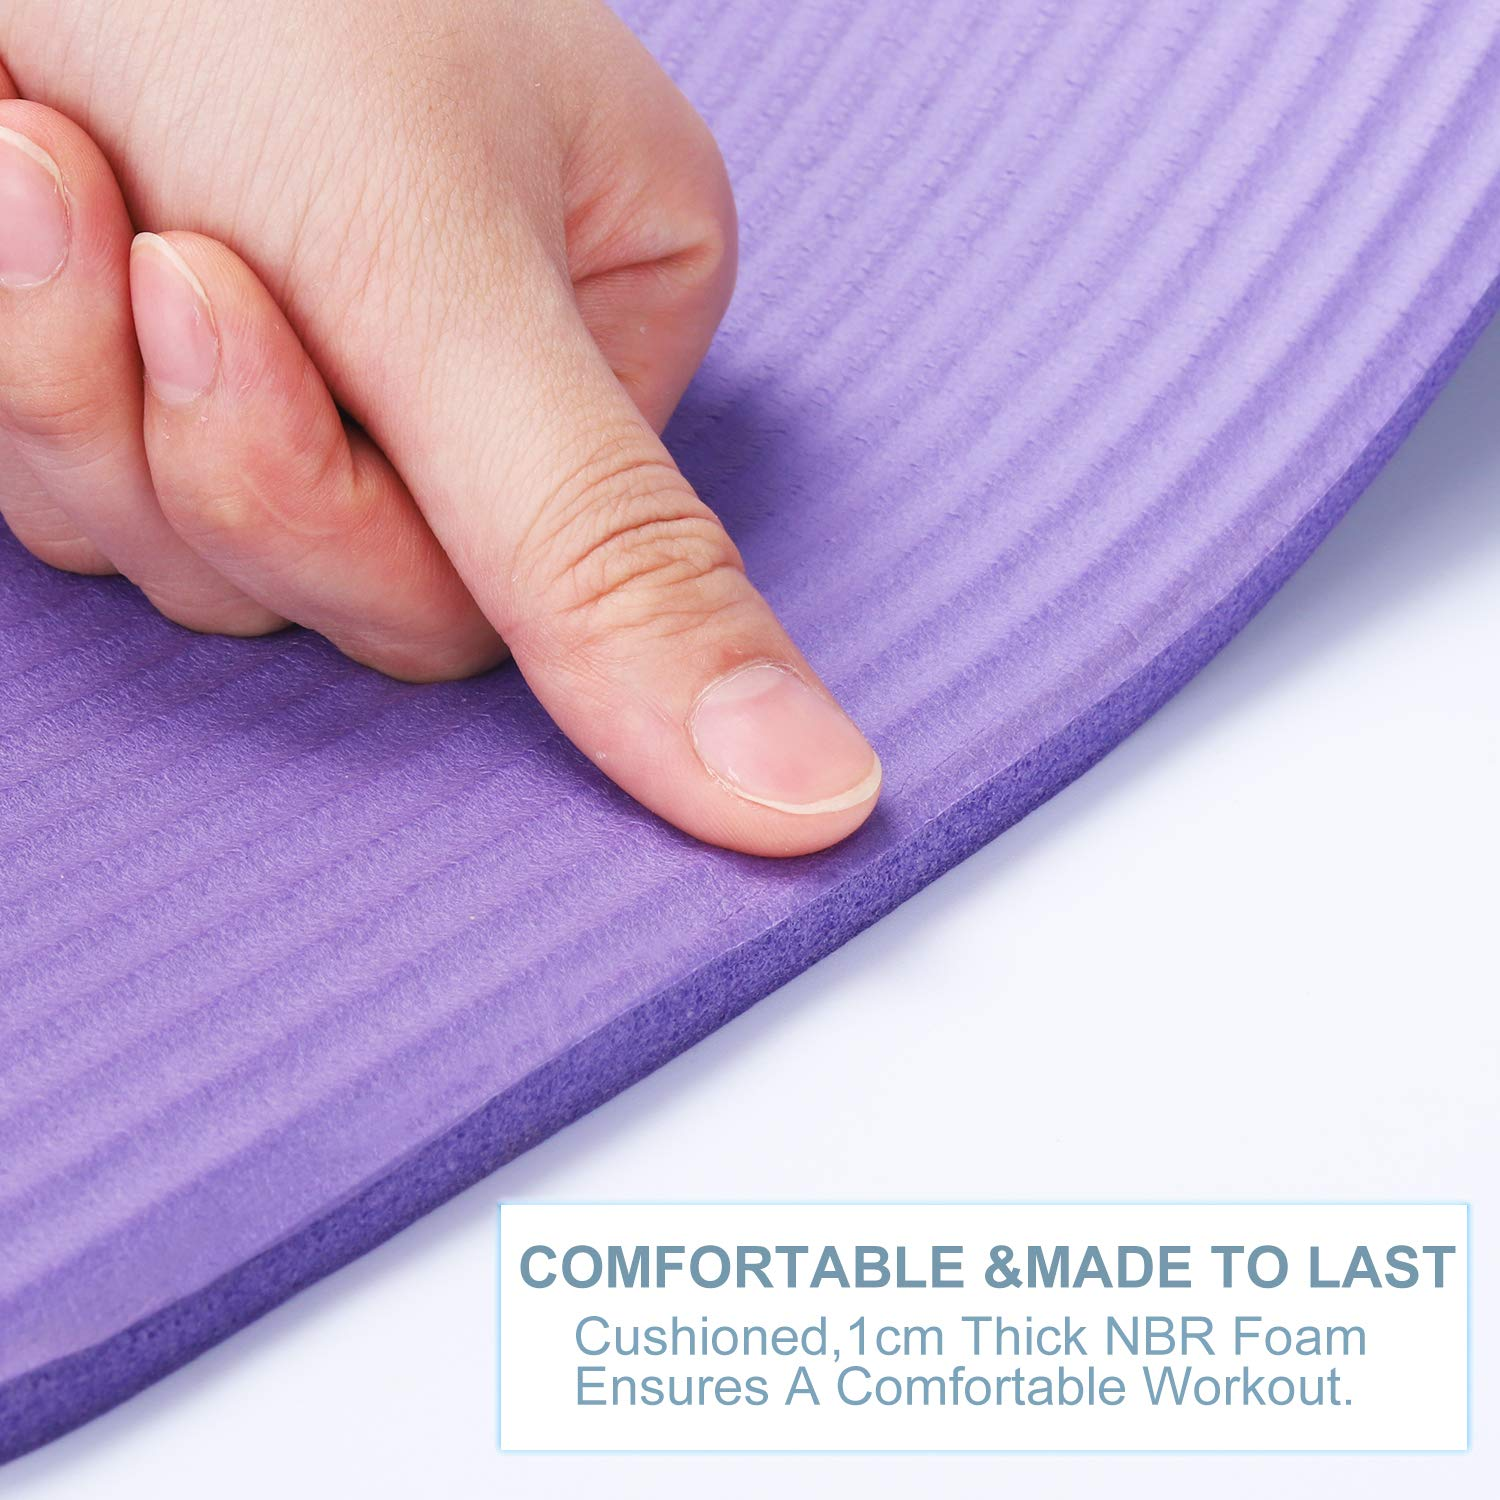 Jestilo Yoga Mat for Women and Men  Non-slip NBR exercise mat   Eco-friendly, Light-Weight Mat with Carry Strap for Yoga, Meditation, Pilates and Gymnastics  Size 183 * 61cm with 10MM Thickness